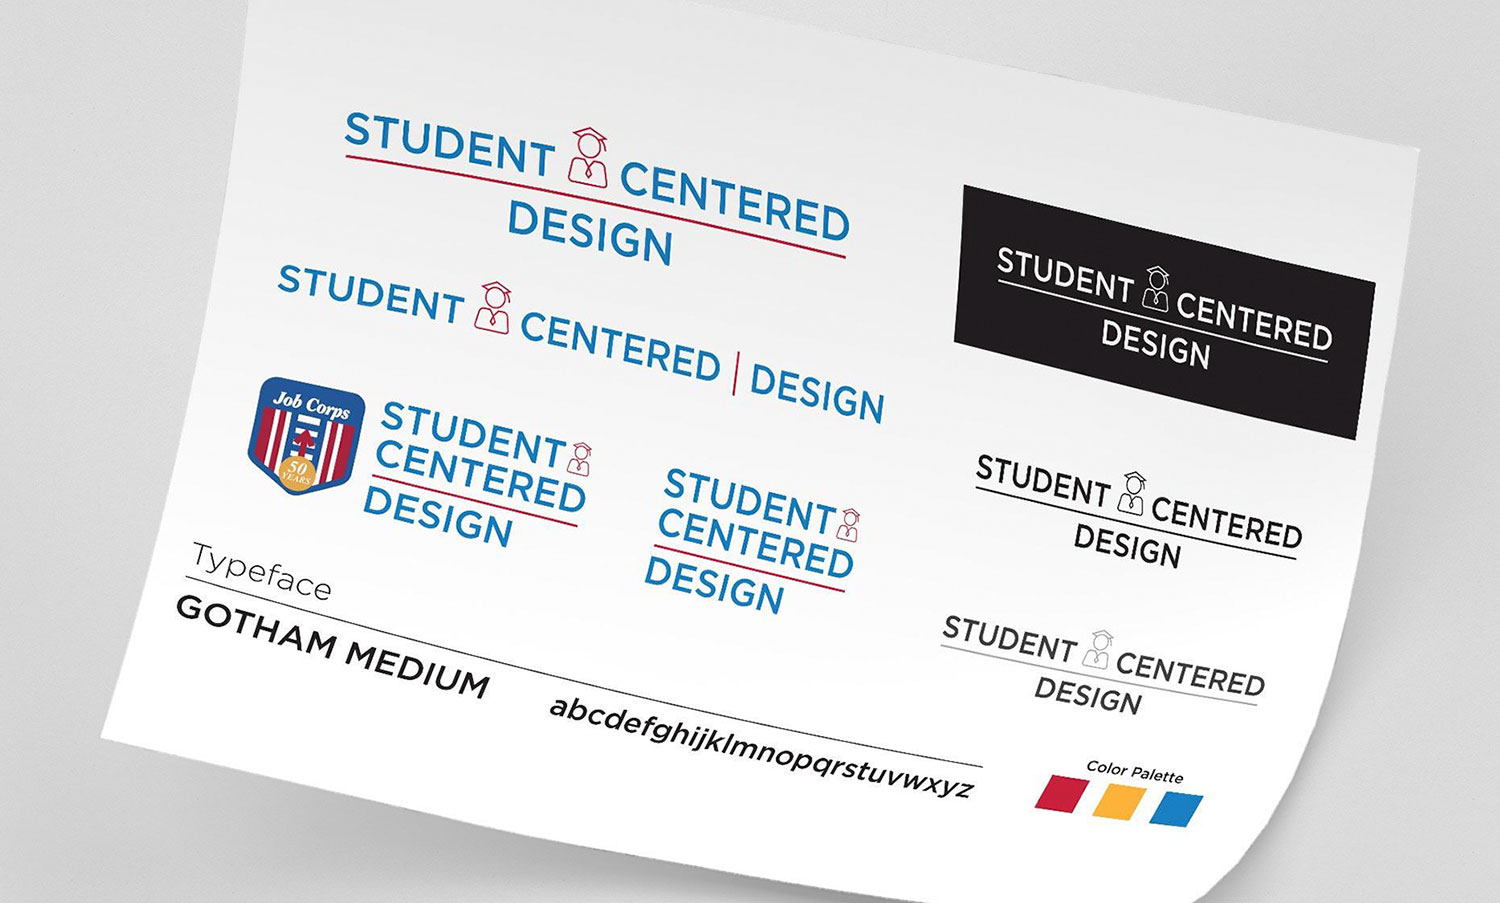 Photo of Job Corps Student Centered Design style guide